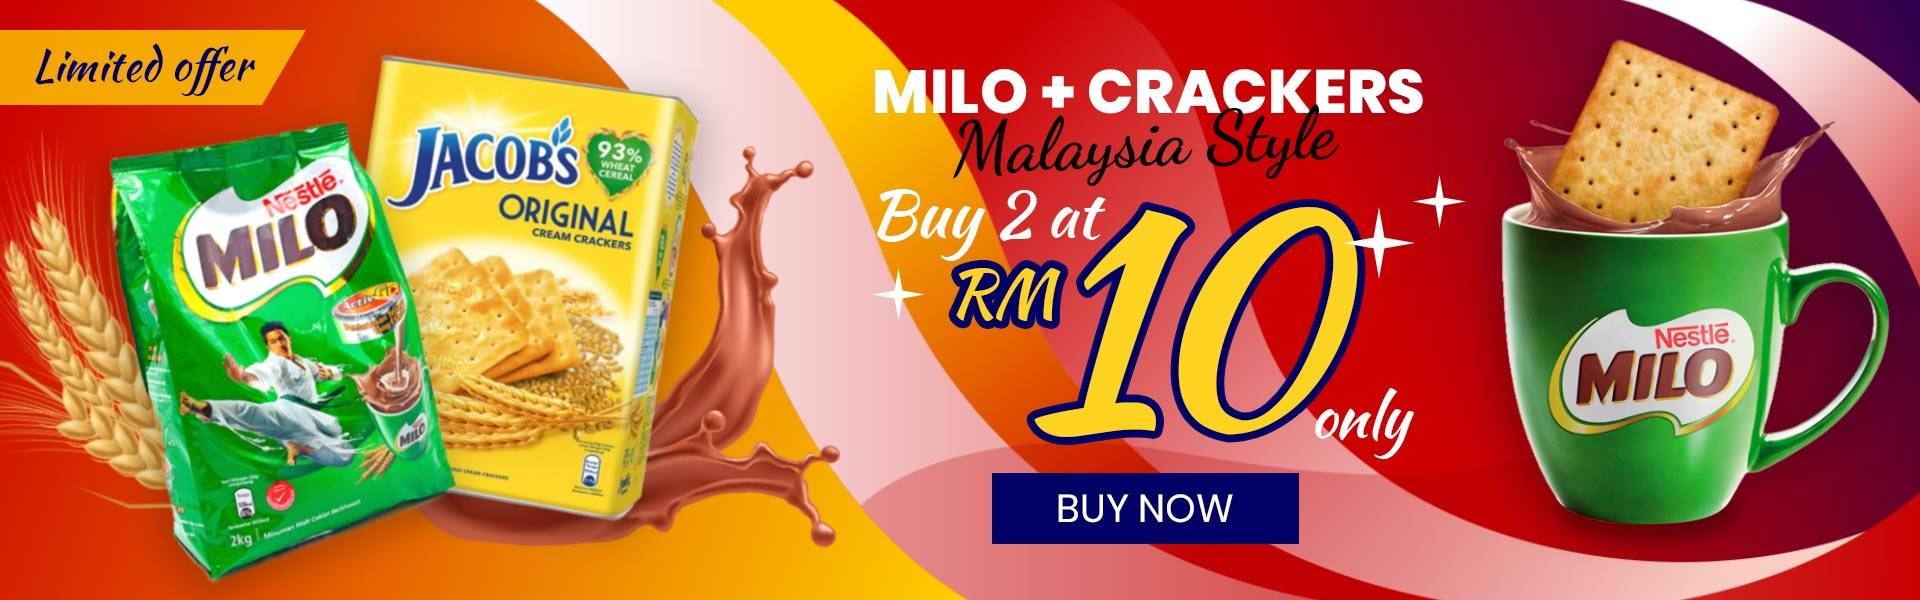 RM10 for Malaysian